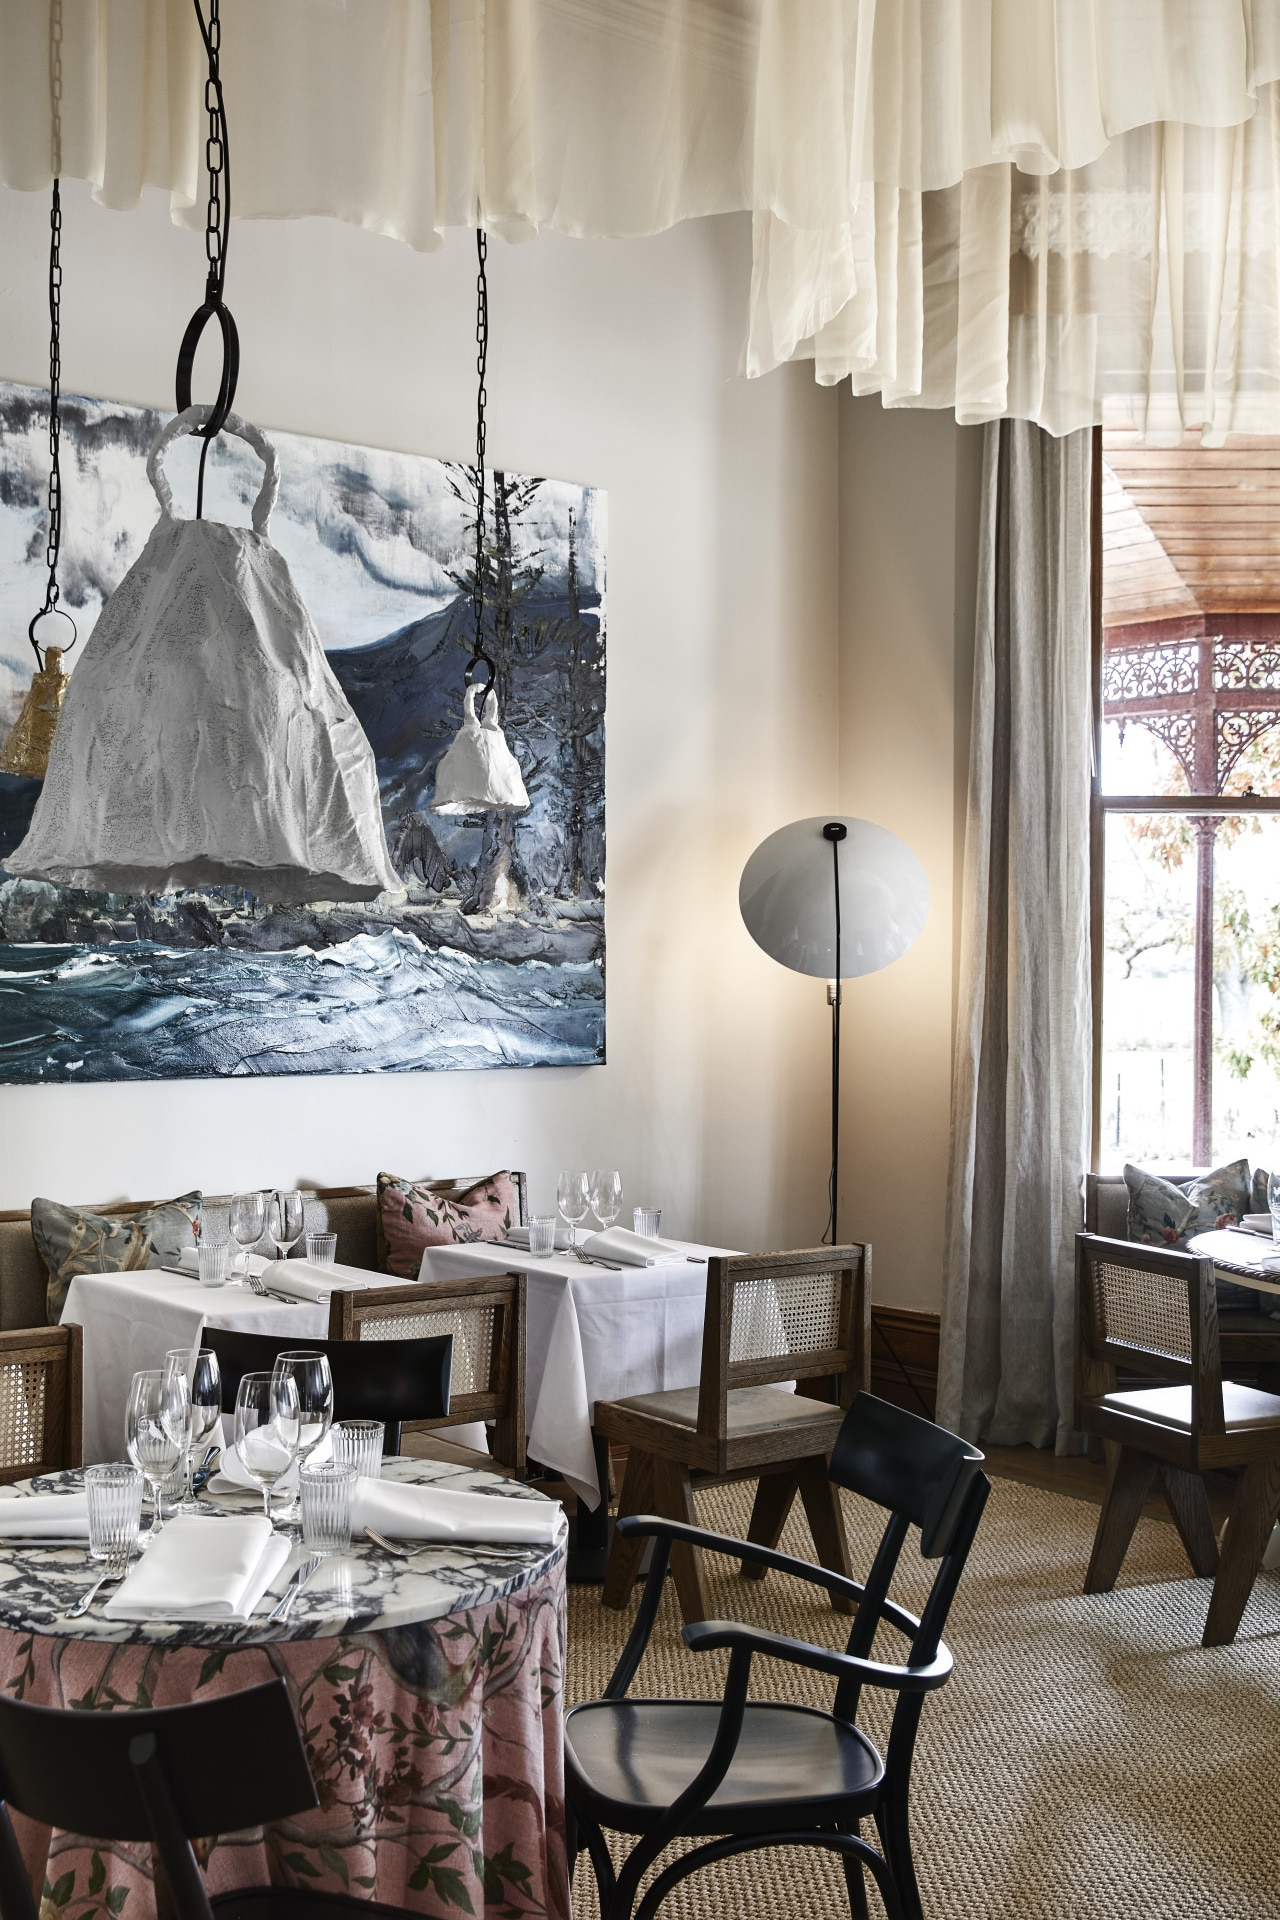 A heritage Victorian homestead reimagined as a stunning restaurant and event space